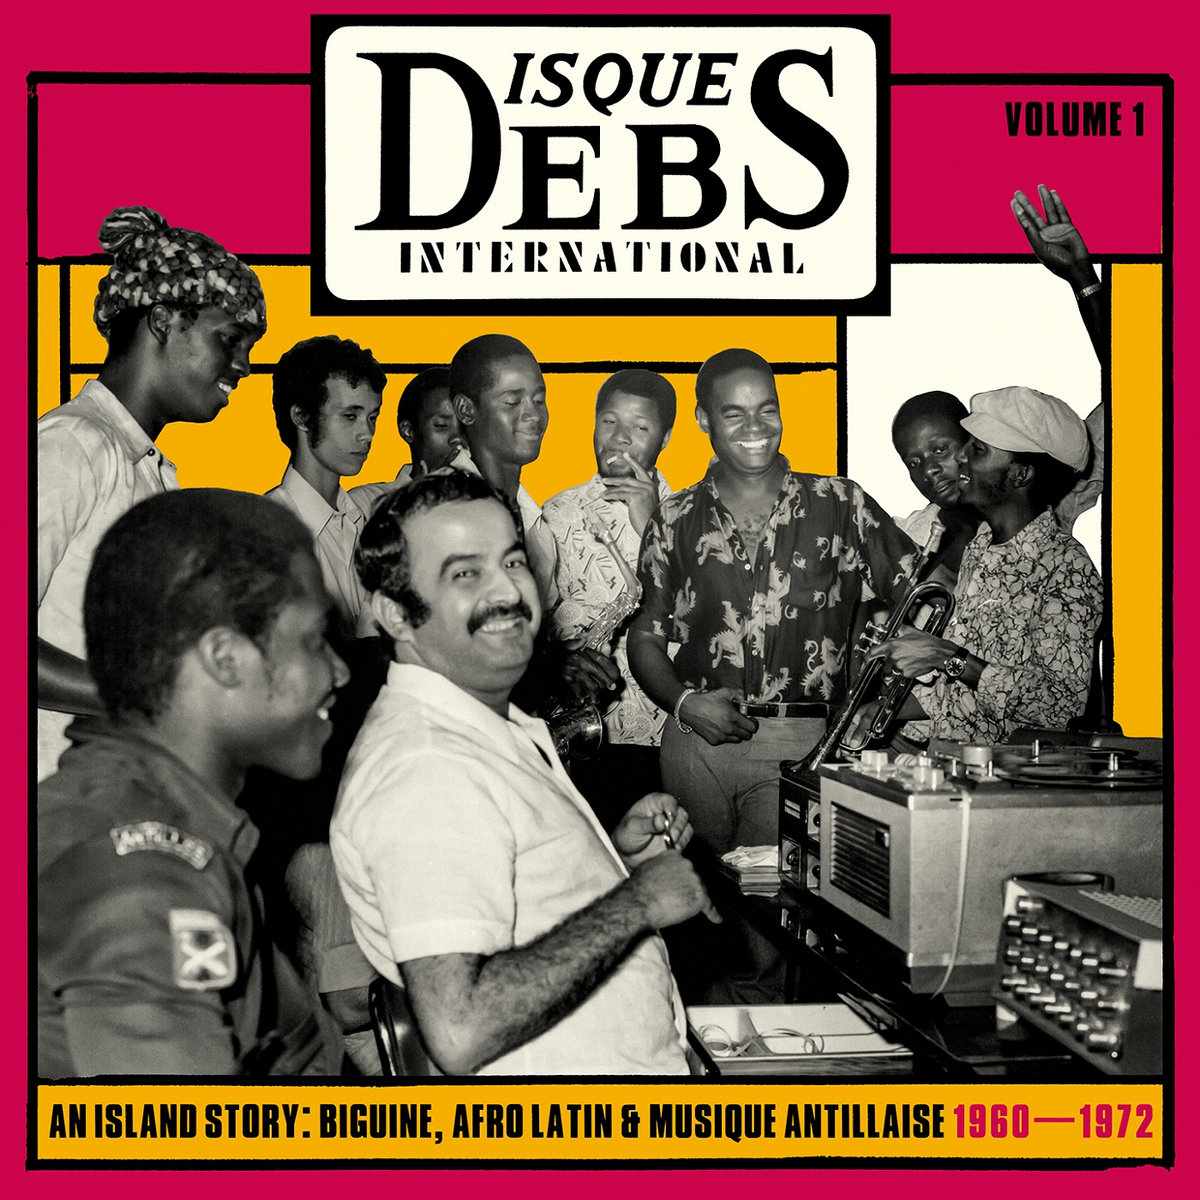 Disques Debs International, vol. 1